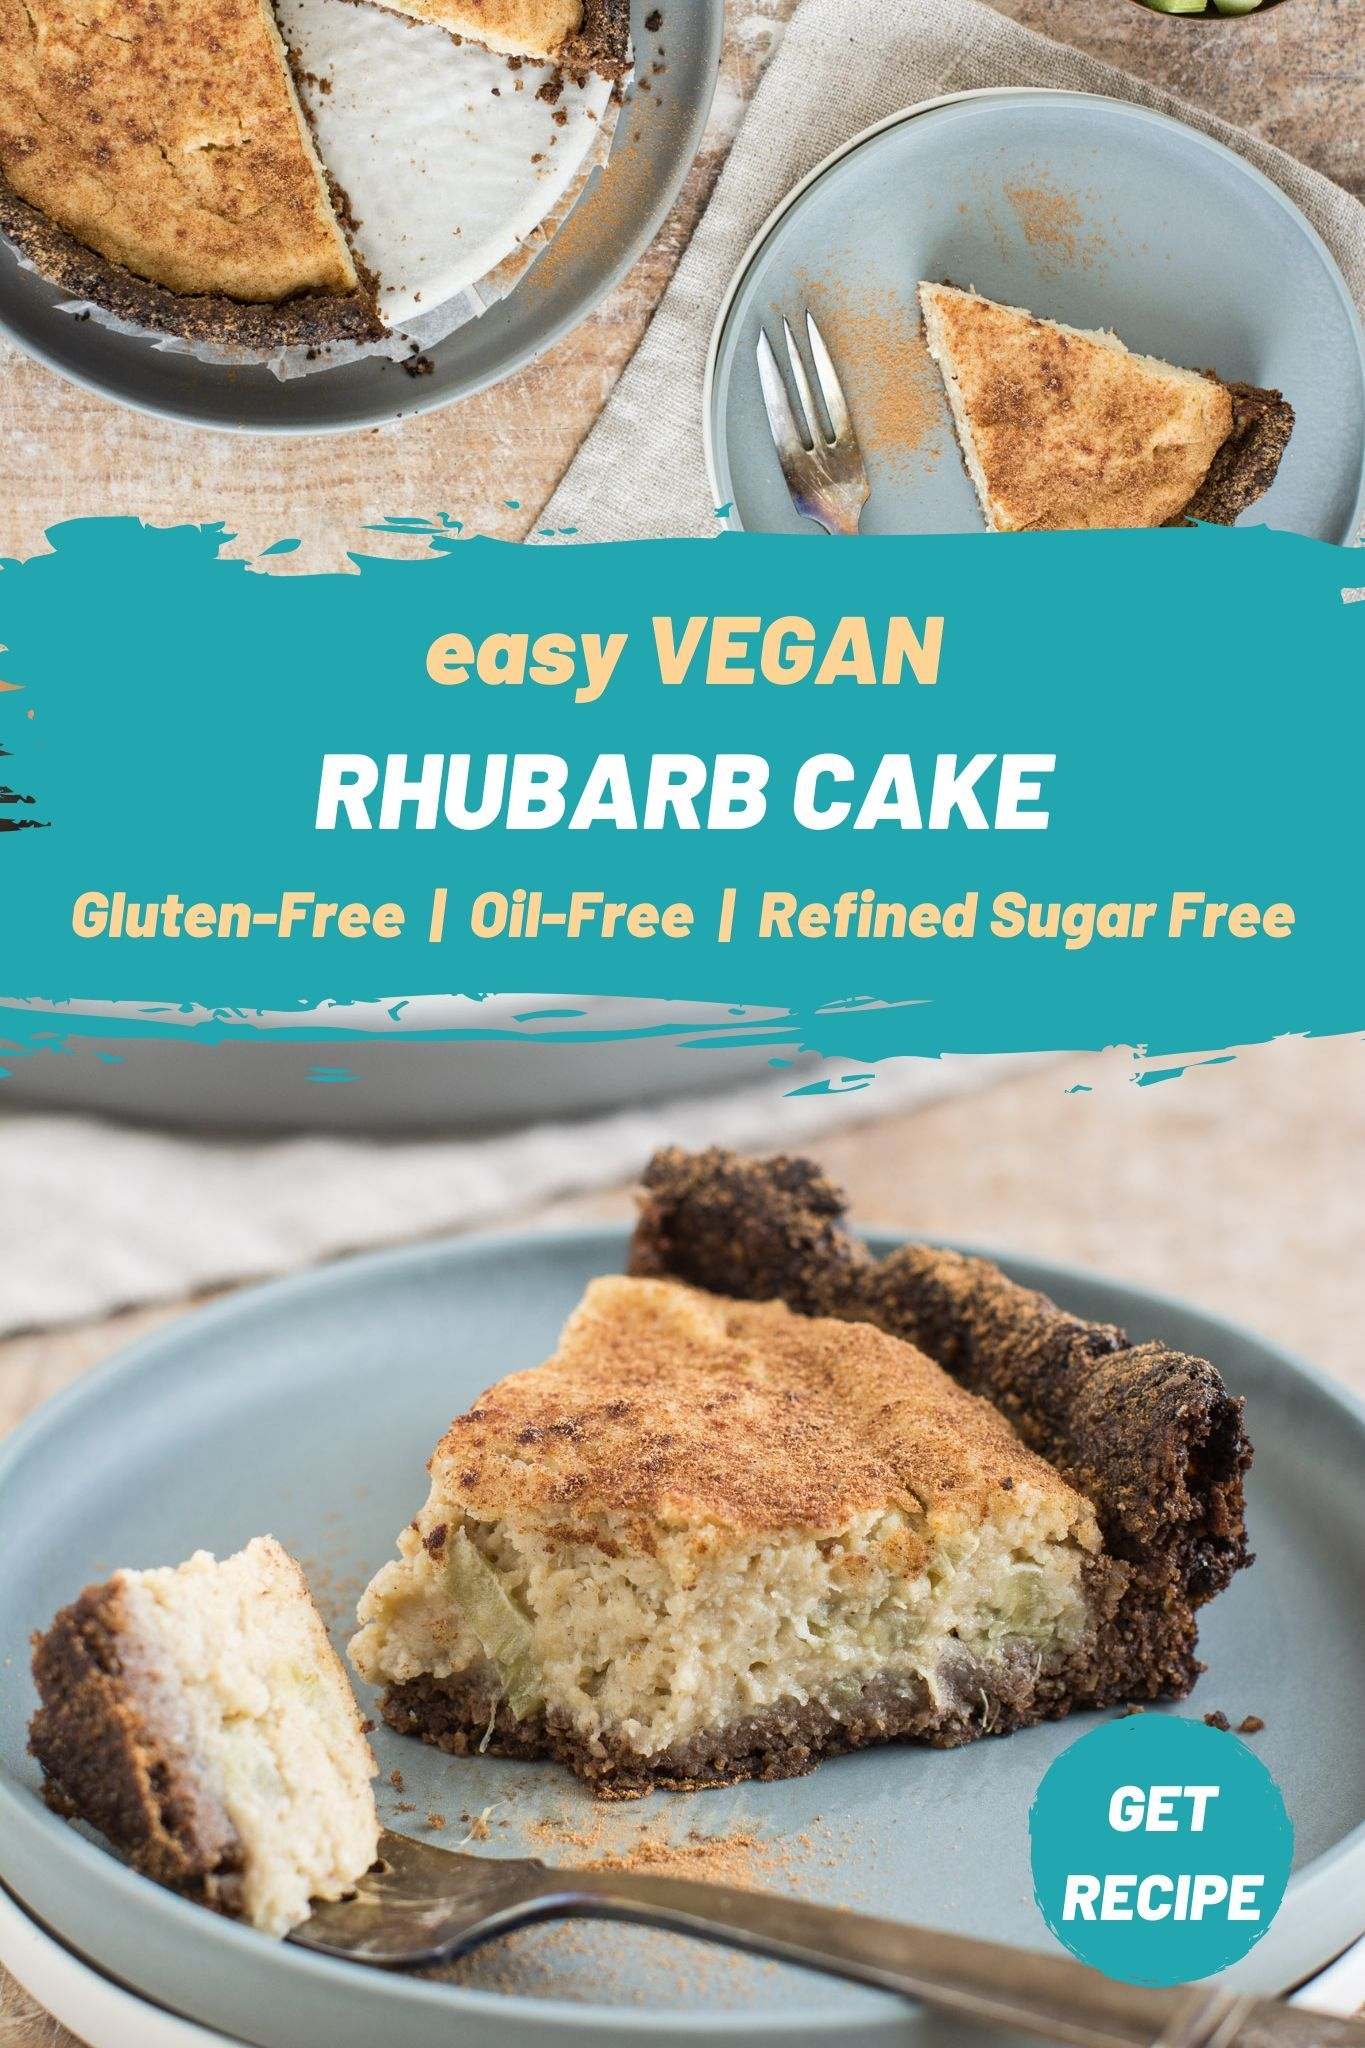 Rhubarb Cake Vegan Gluten Free Sugar Free Oil Free Recipe In 2020 Clean Eating Dessert Recipes Vegan Gluten Free Cake Best Vegan Recipes